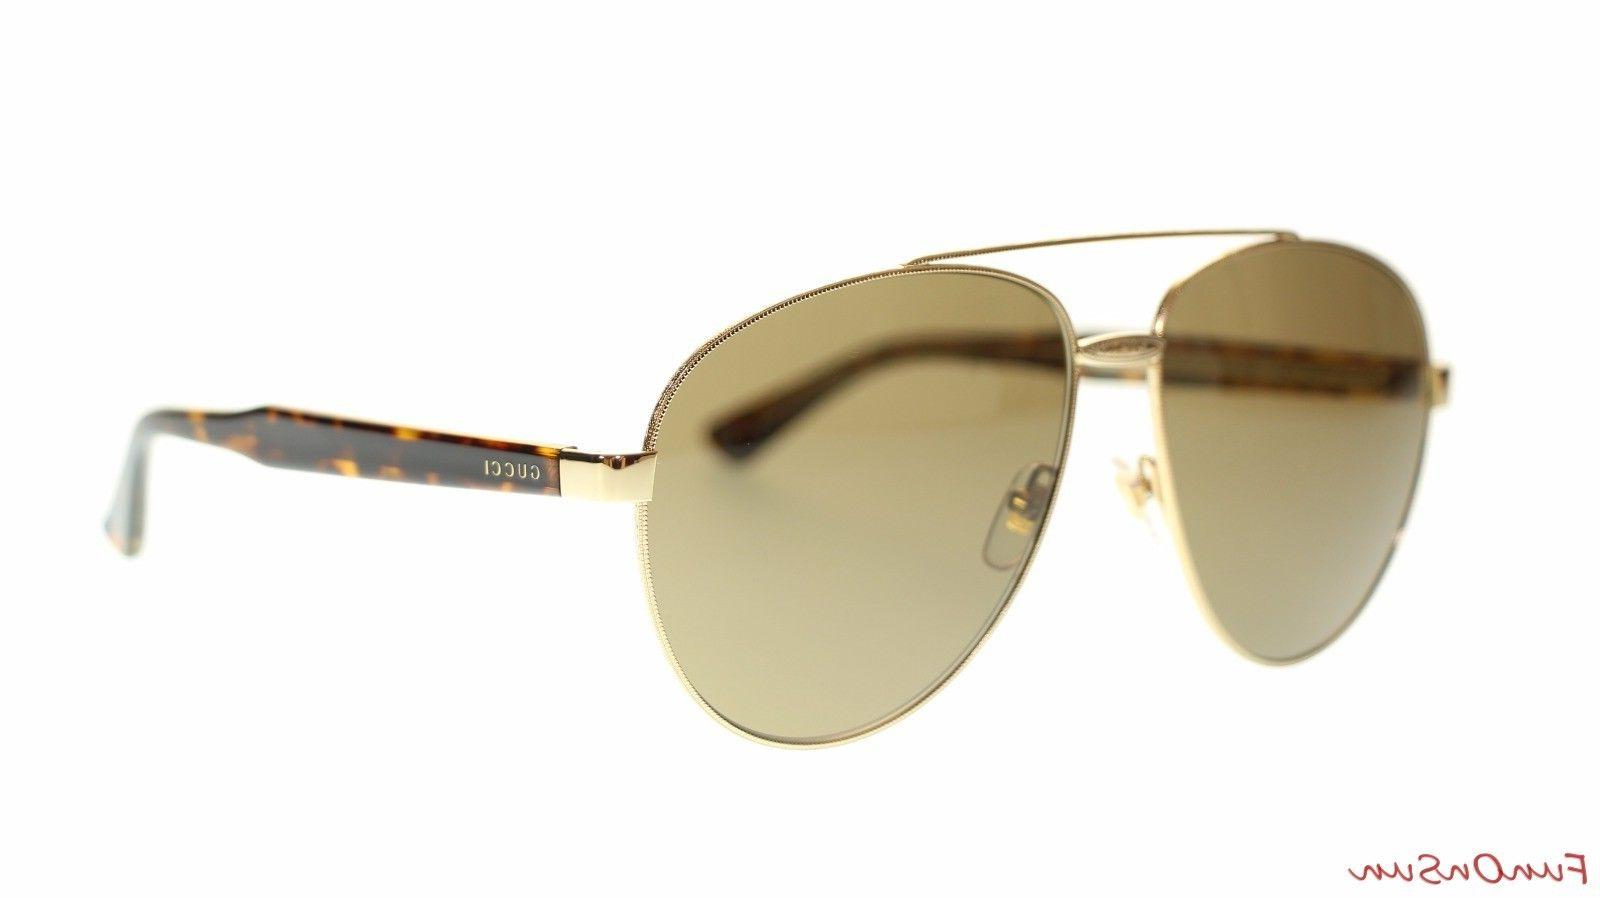 Gucci Men's Aviator Sunglasses GG0054S 002 Gold Havana/Brown